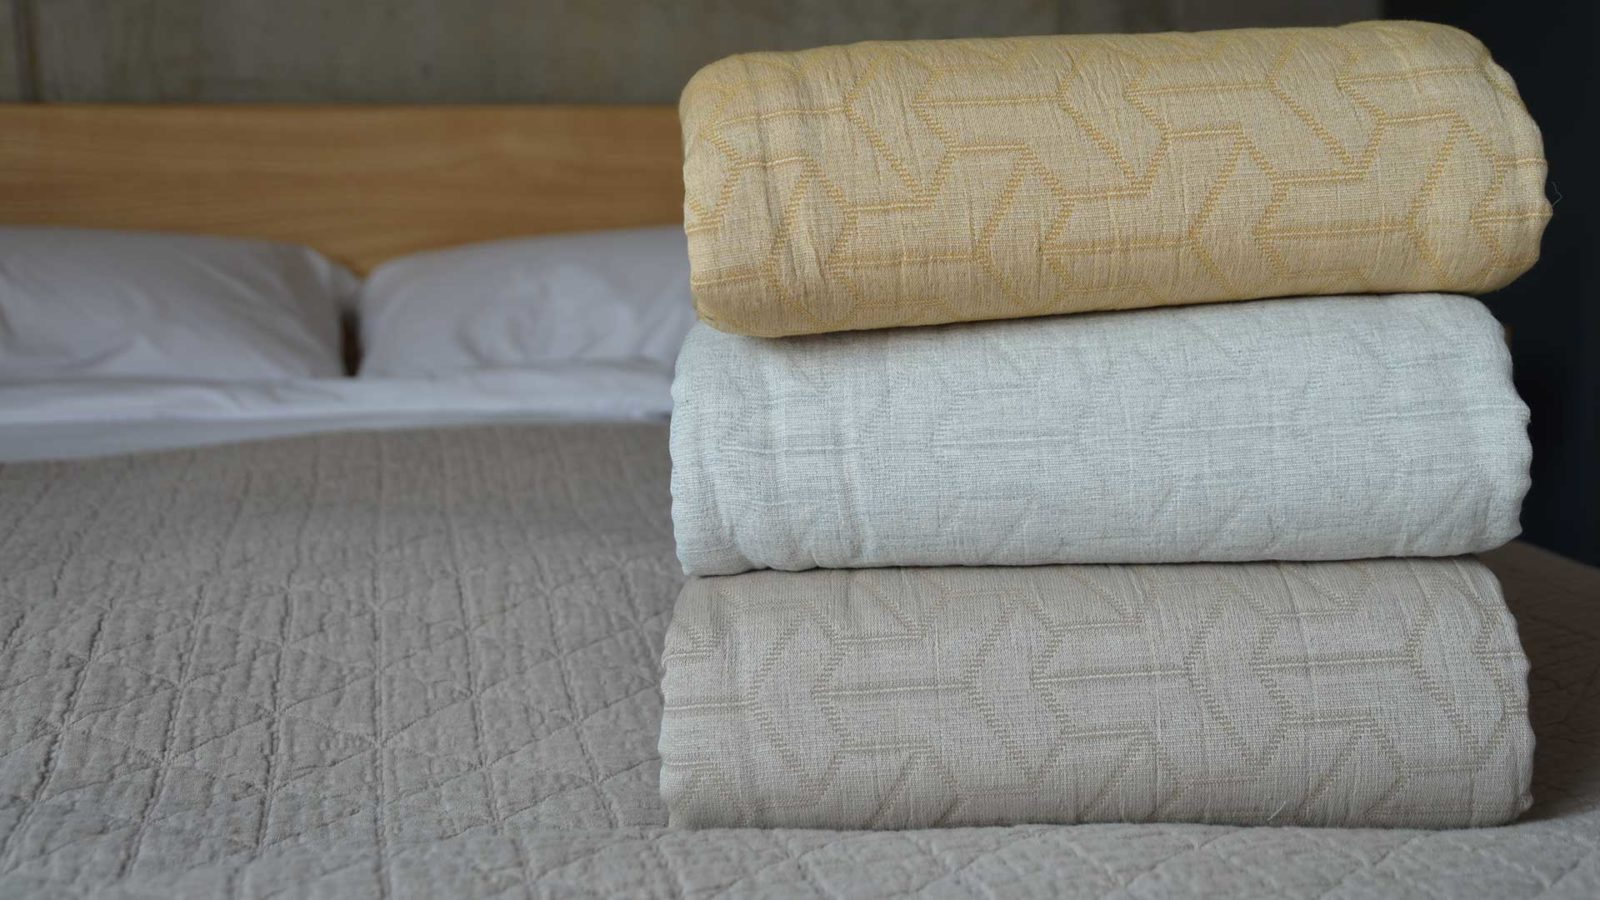 Stitched cotton bedspread made with 25% recycled cotton